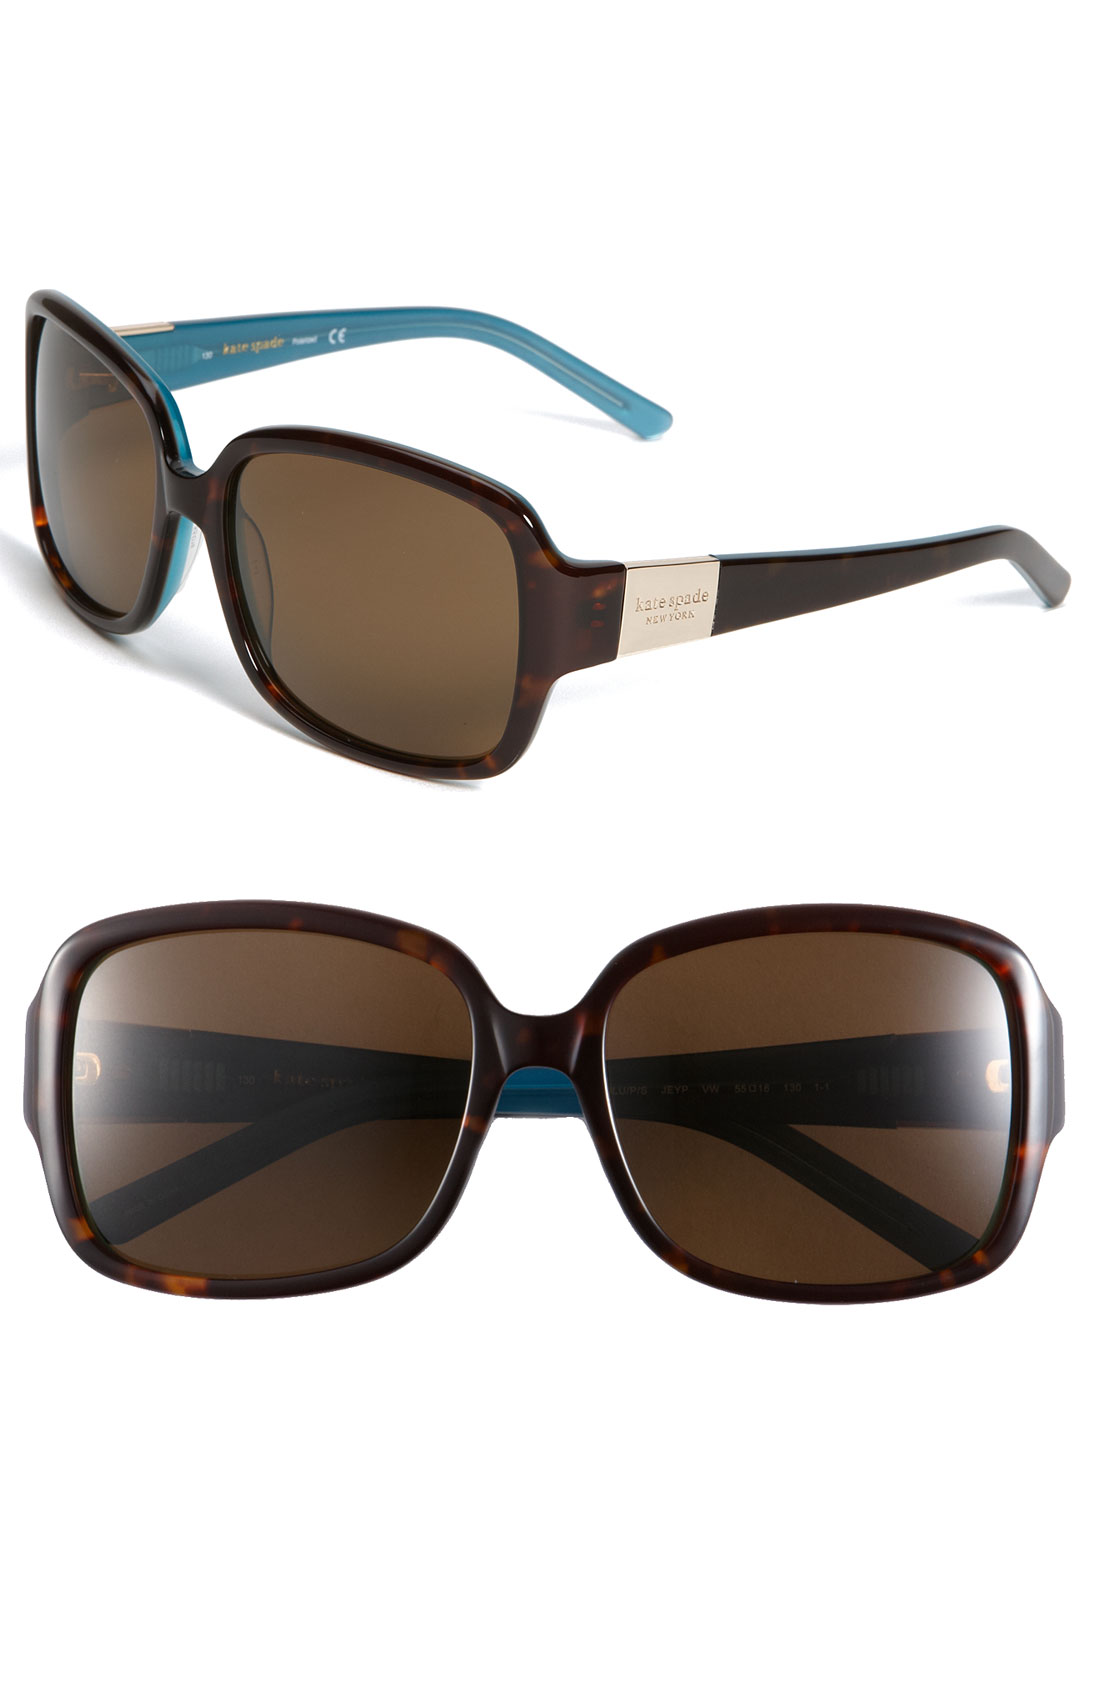 6d0bf954bf Kate Spade Polarized Sunglasses For Women